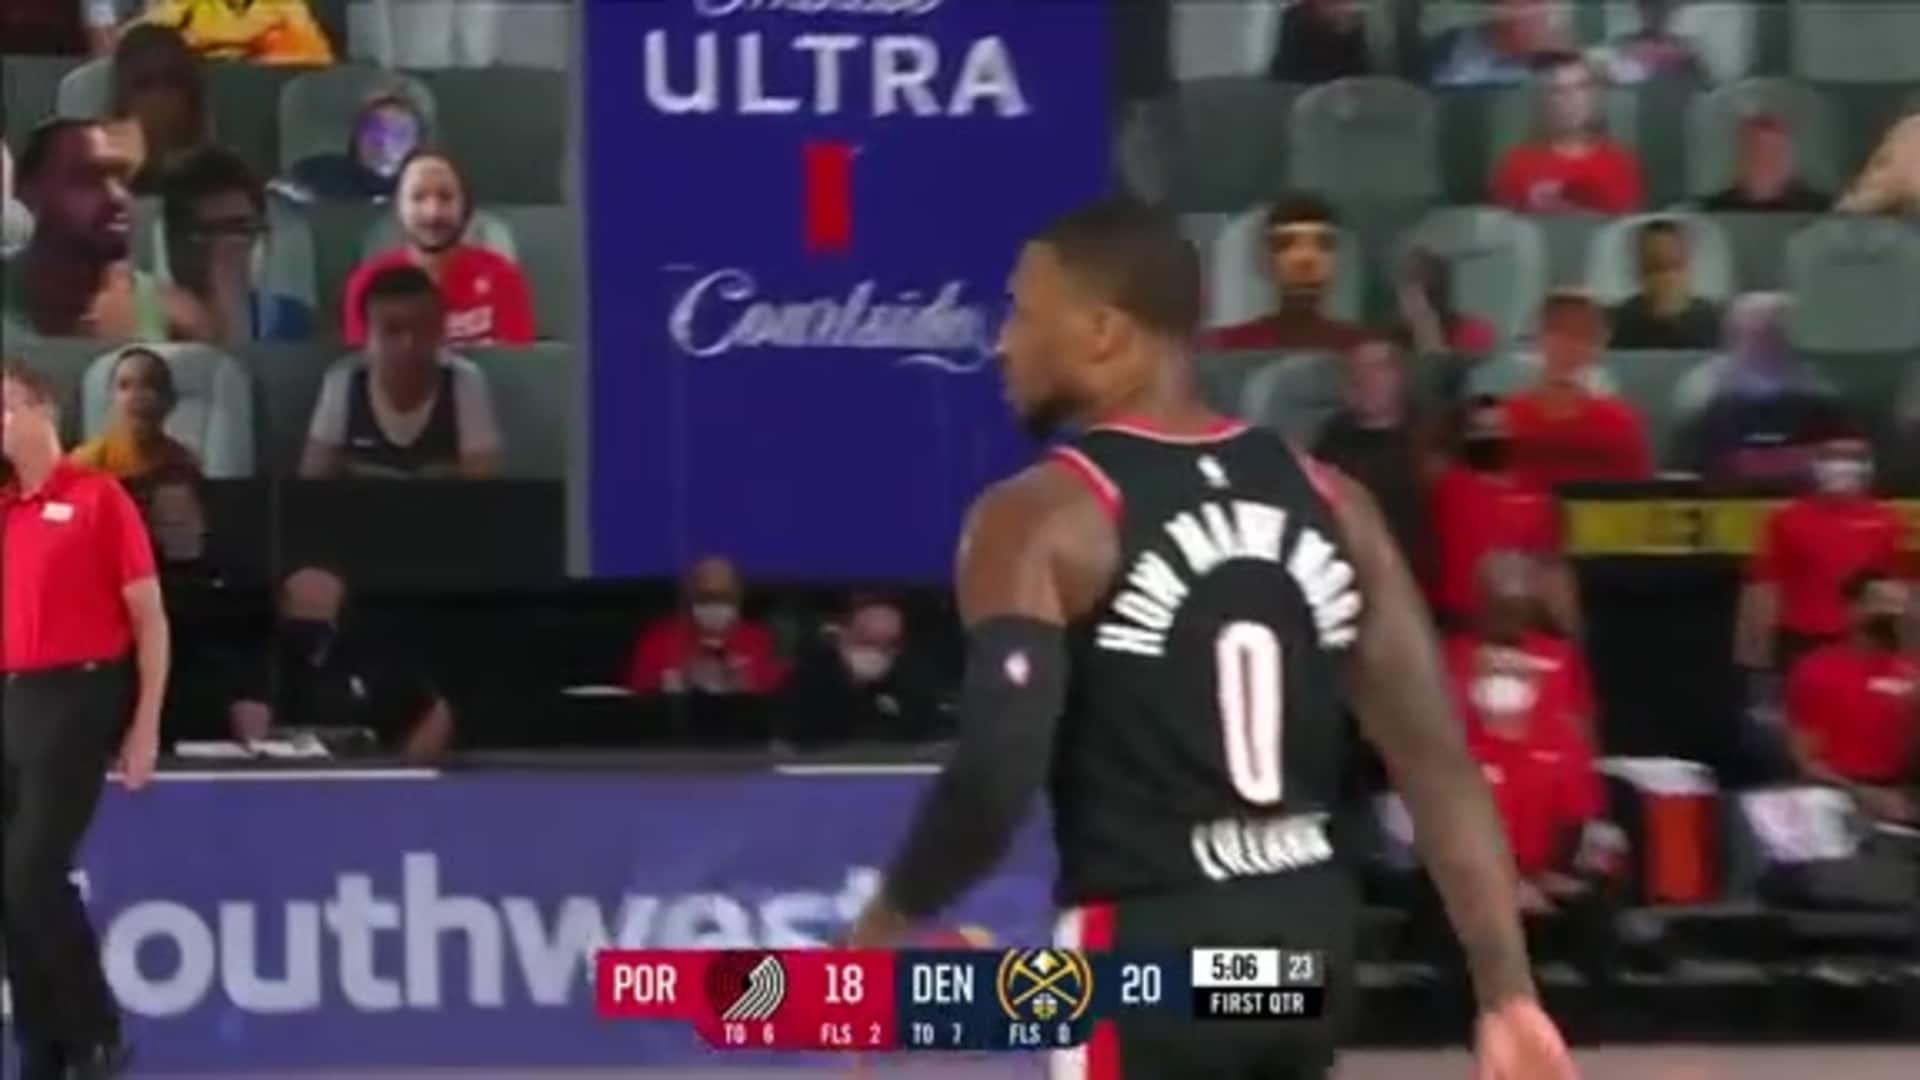 Damian Lillard is on fire early with two deep threes